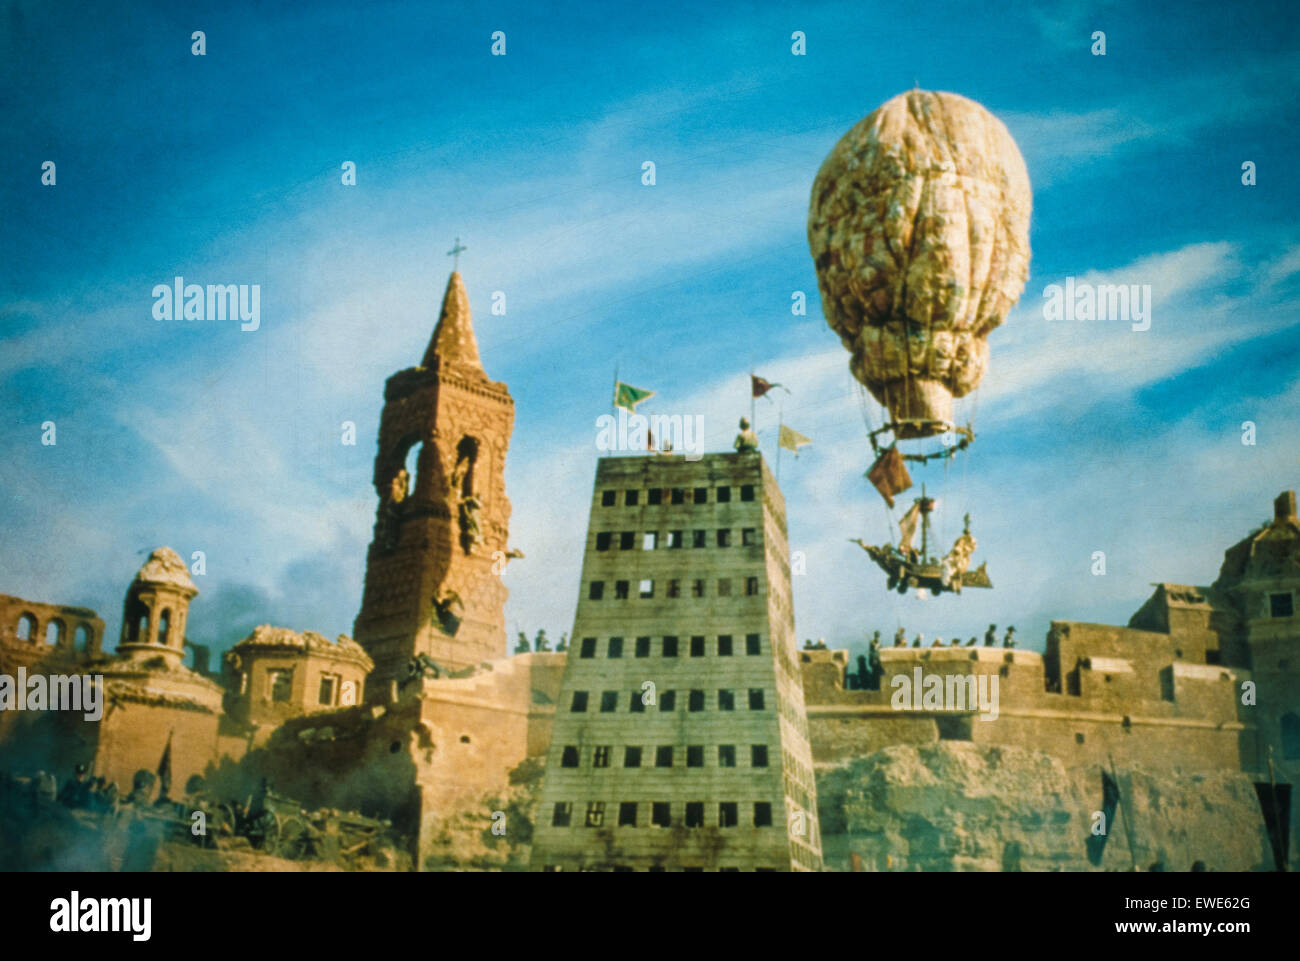 the adventures of baron munchausen - Stock Image